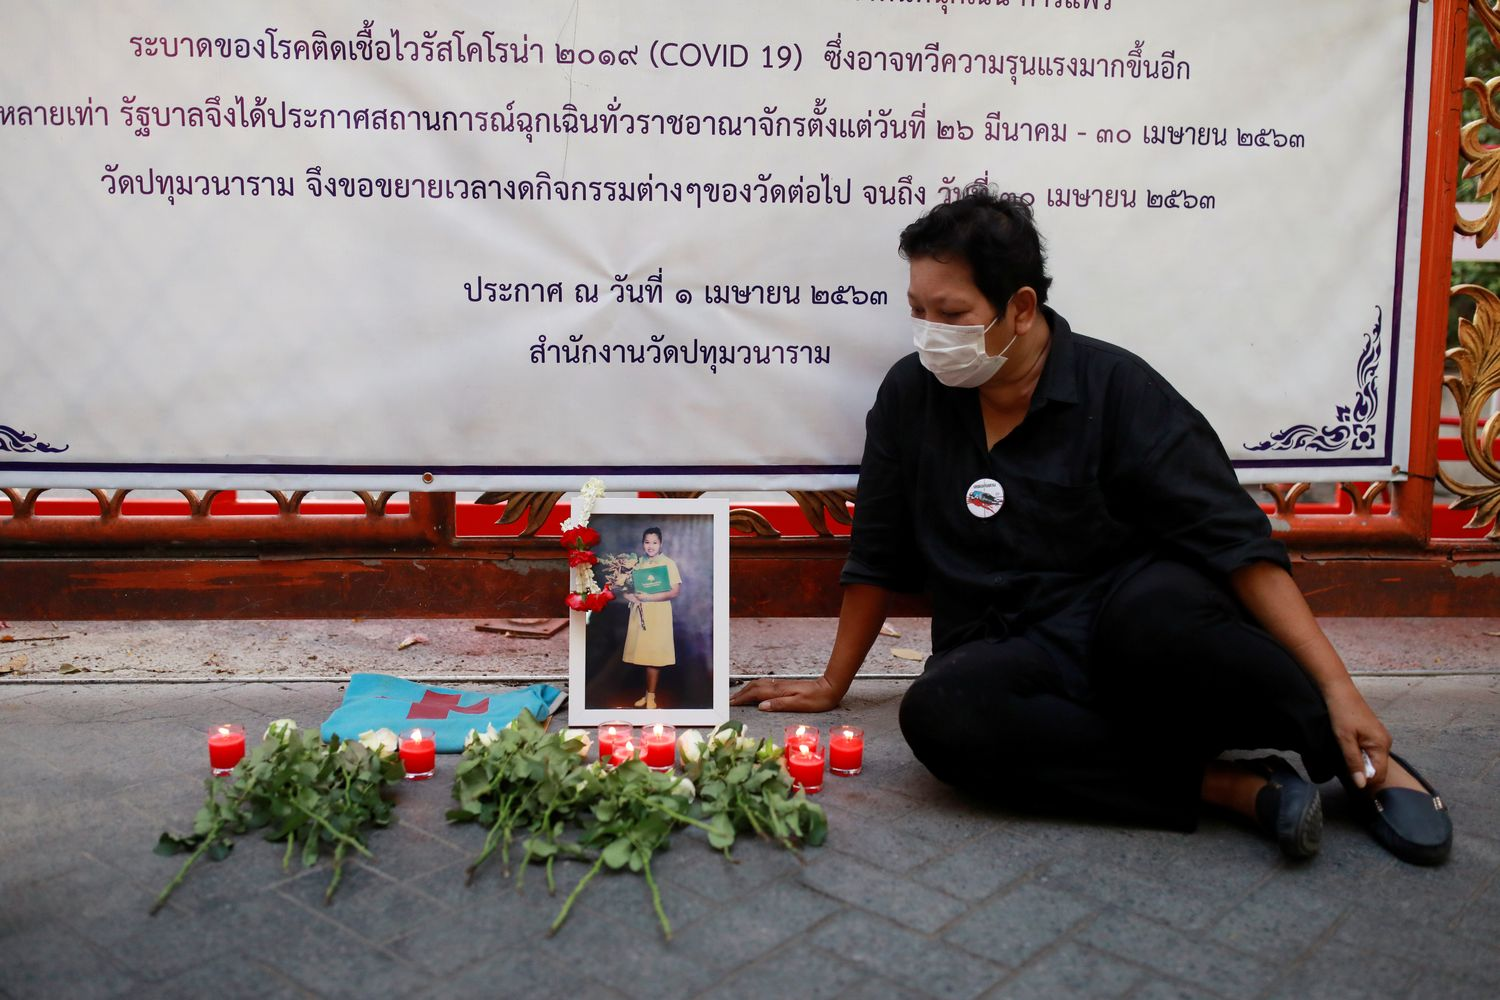 Payao Akkahad, whose daughter Kamonkade Akkahad was shot dead along with five other paramedics at Bangkok's Prathum Wanaram temple, sits near a photo of her daughter at the locked temple's gates in Bangkok on Tuesday. (Reuters photo)